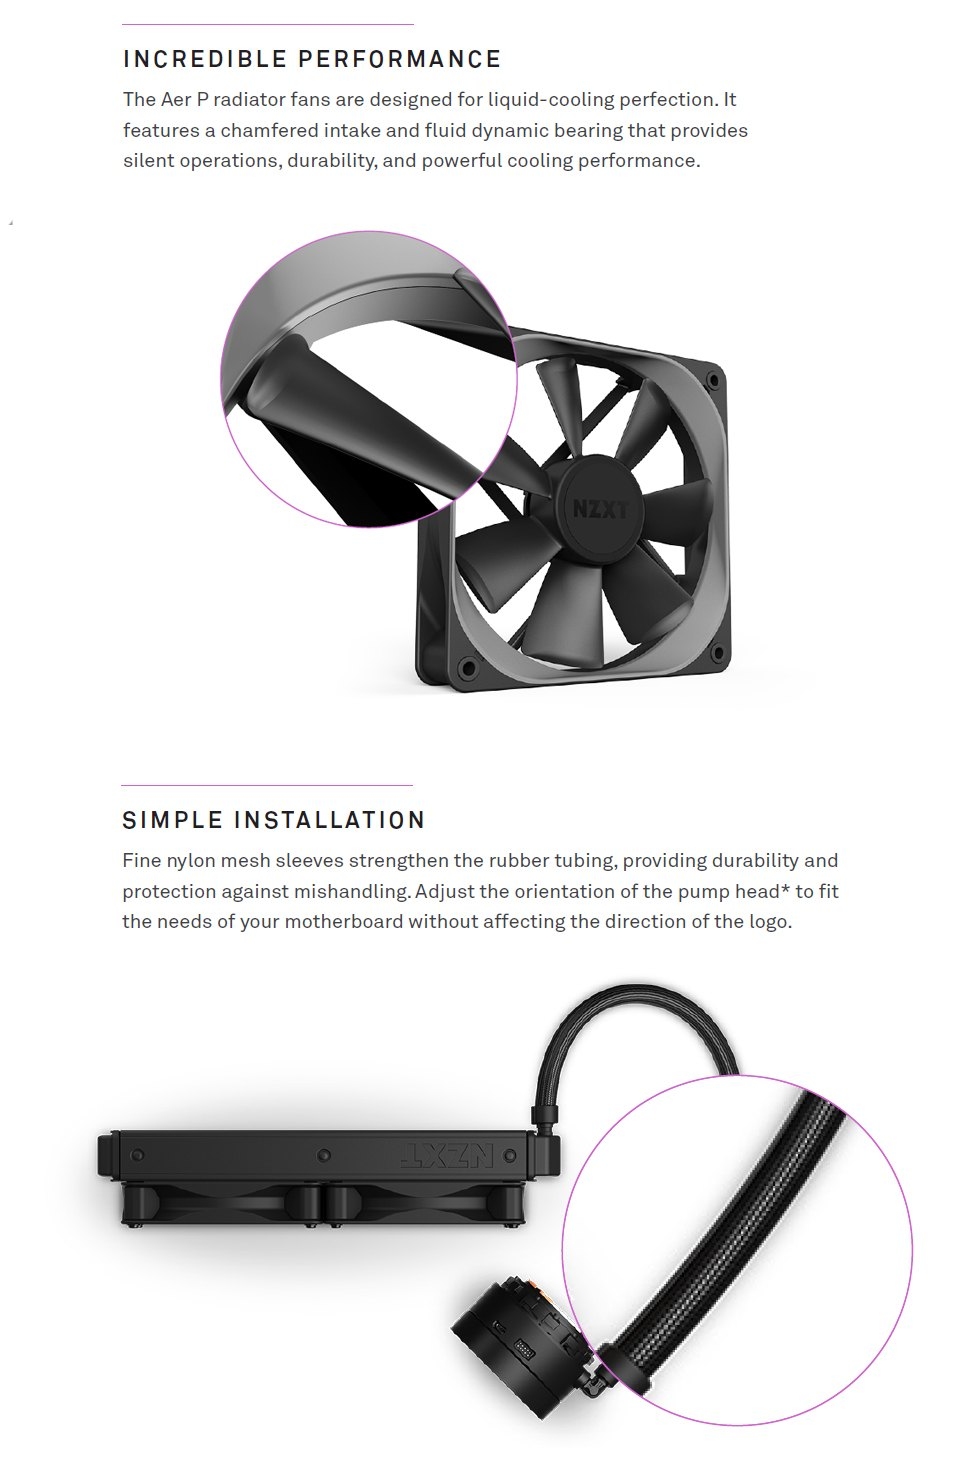 NZXT Kraken X73 360mm AIO Liquid CPU Cooler features 3